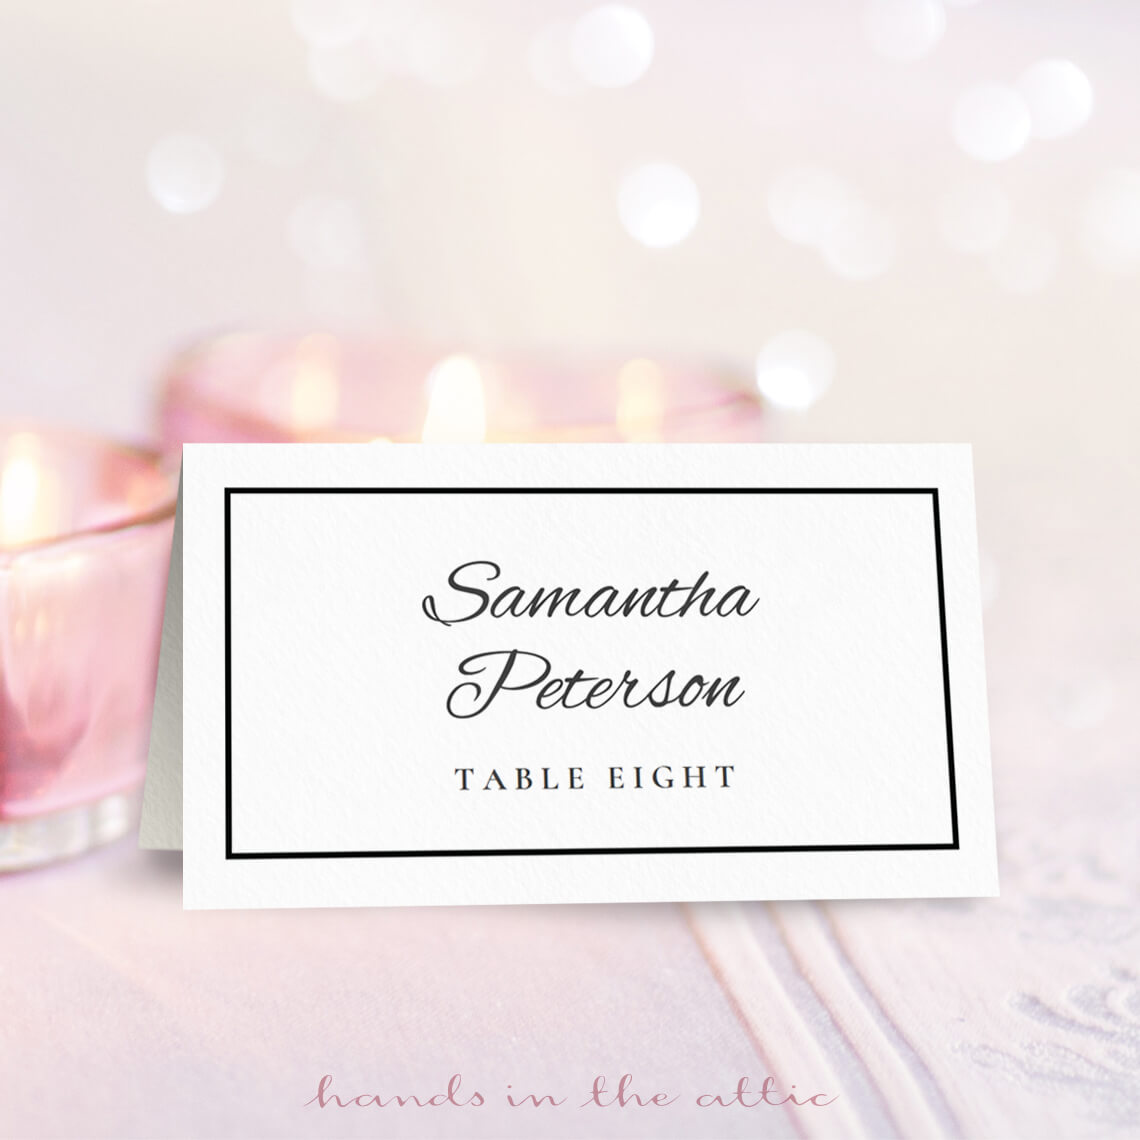 Wedding Place Card Template Free Download Printable Stationery - Card template free: place card size